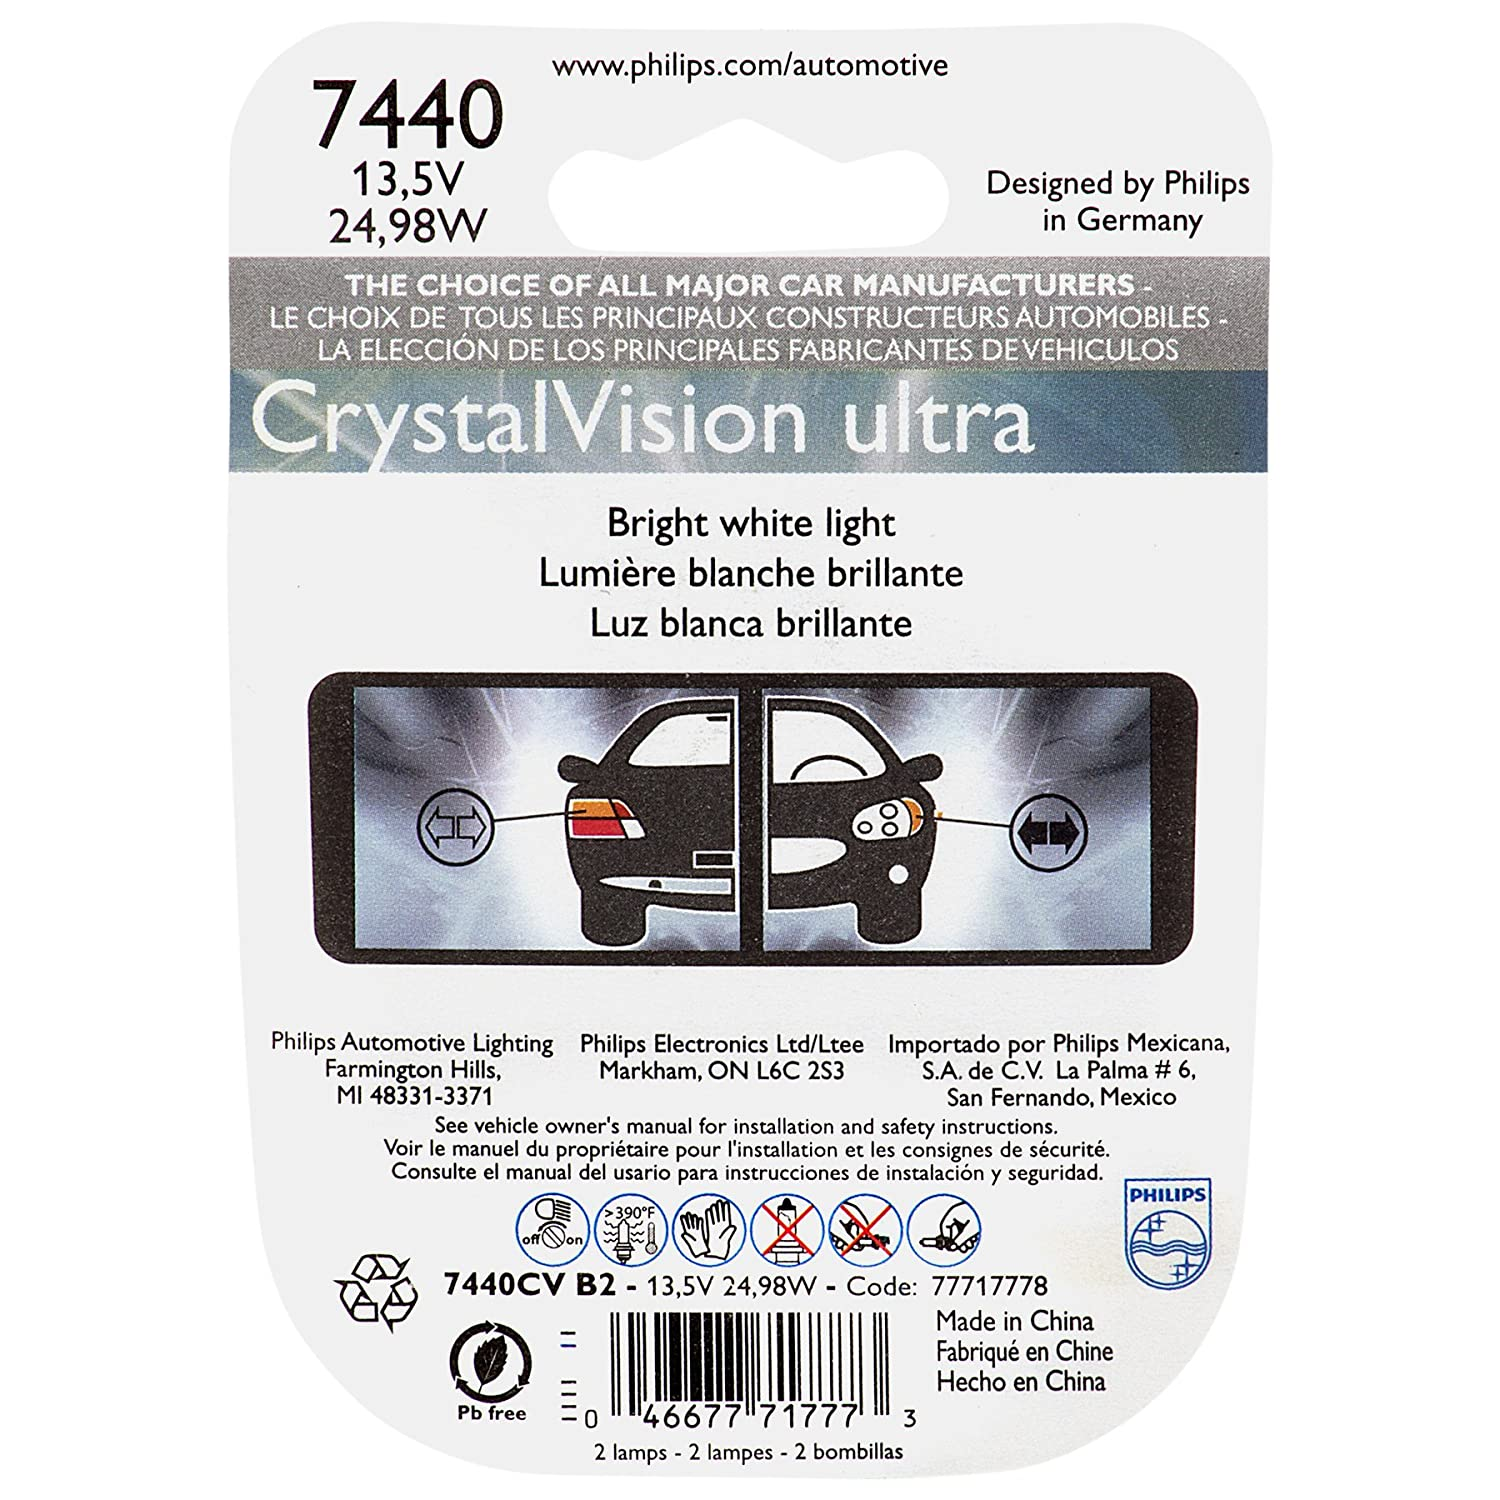 Amazon.com: Philips 921CVB2 CrystalVision Ultra Miniature Bulb, 2 Pack: Automotive